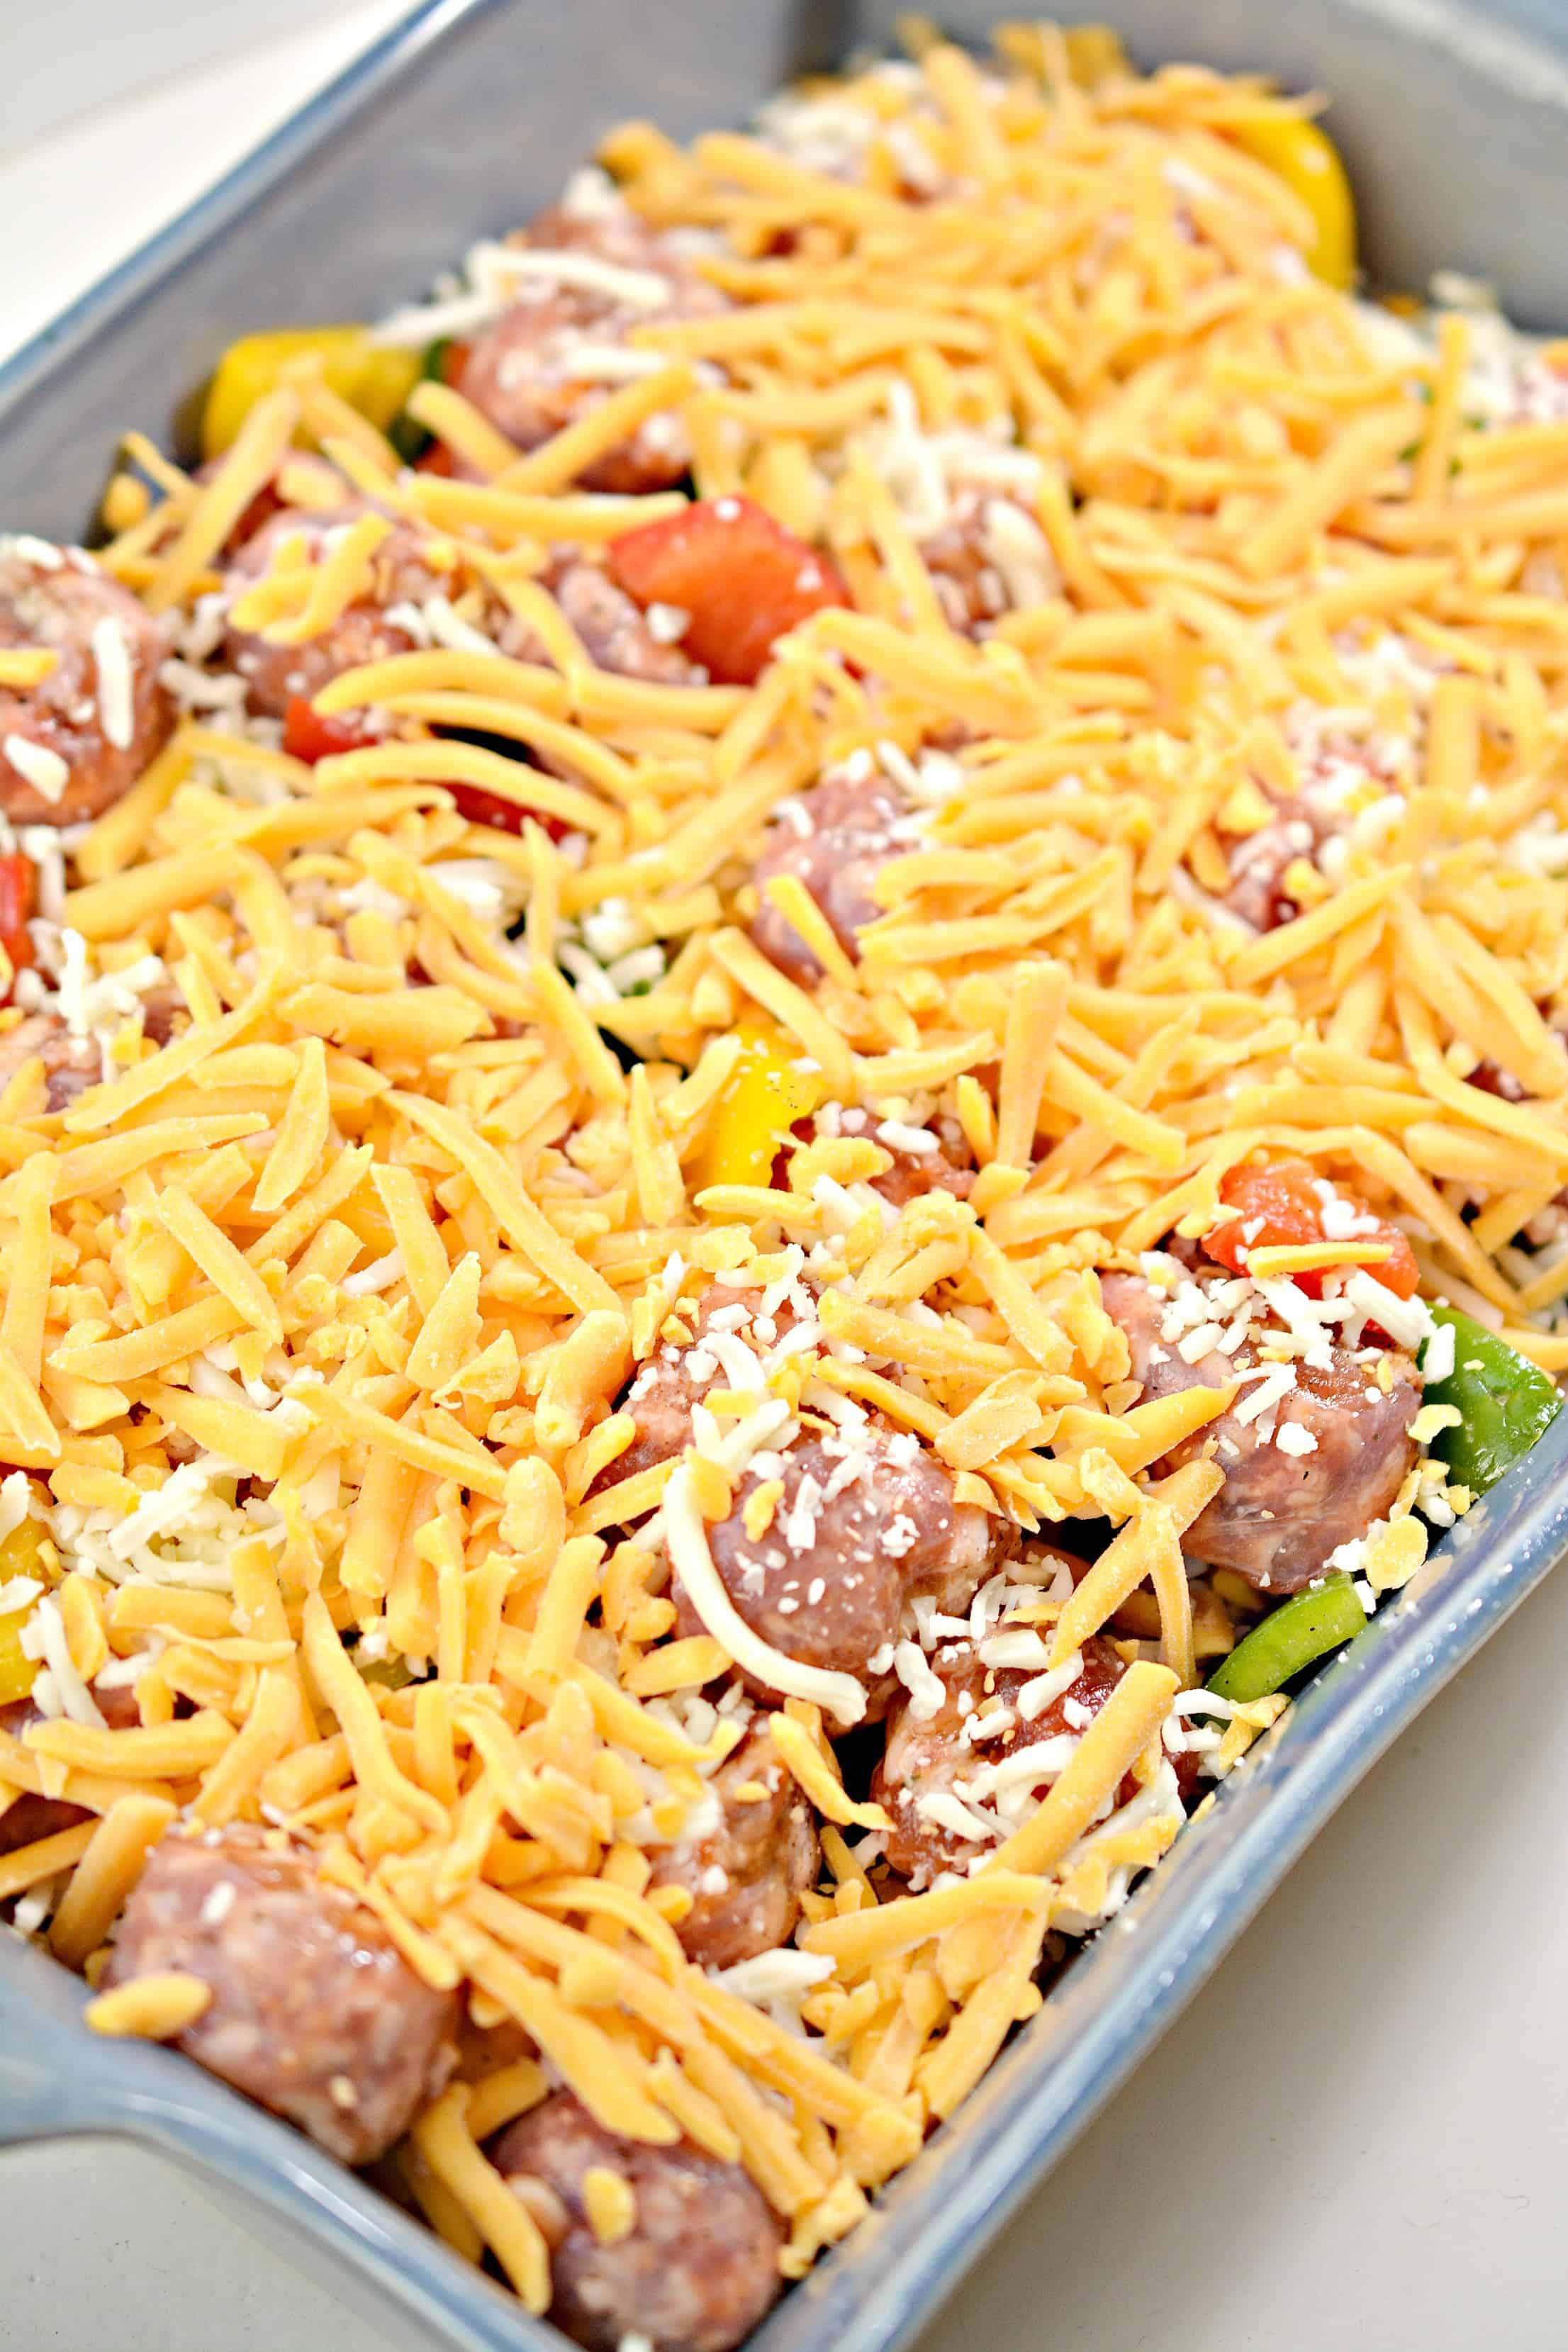 sausage, peppers and cheese